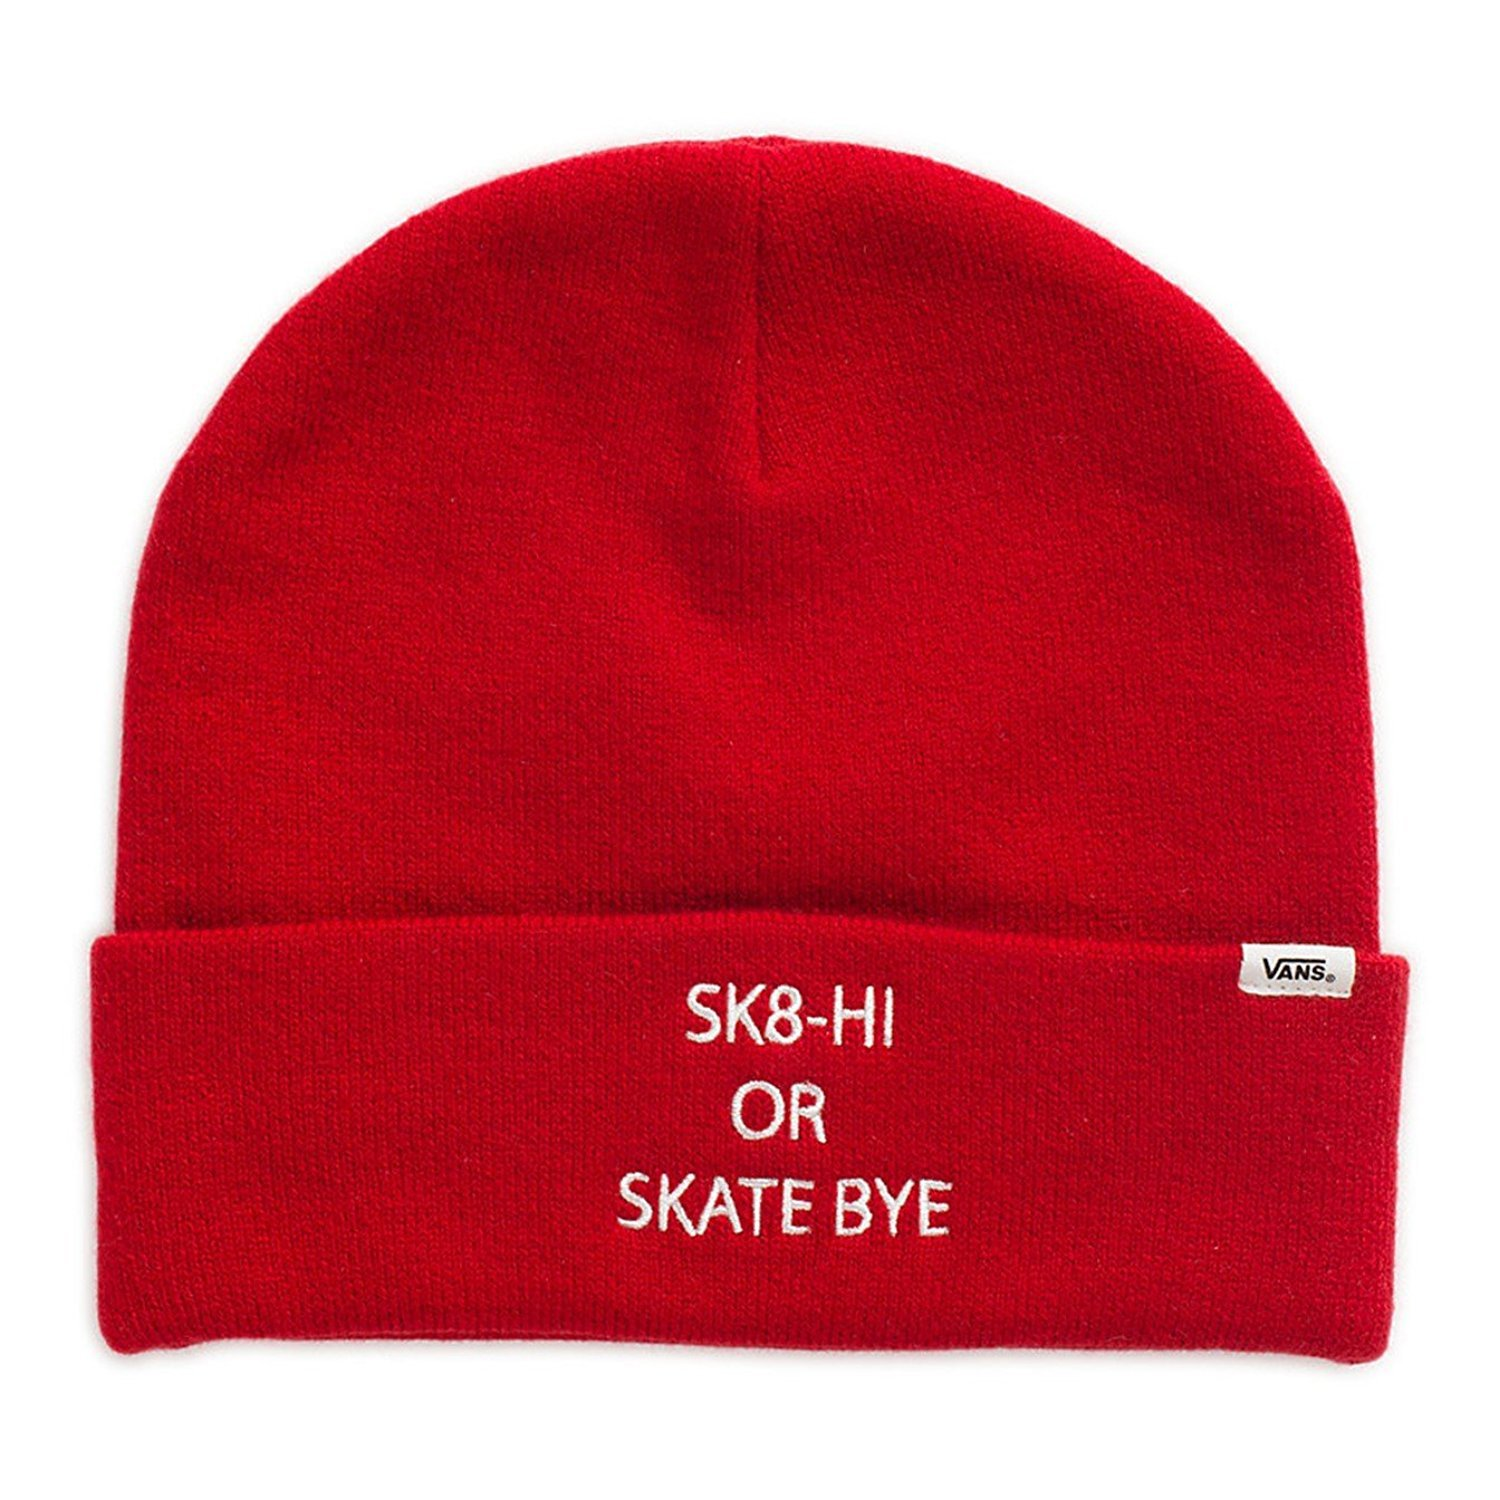 Vans off the wall mens sammie beanie chili pepper at amazon mens clothing  store jpg 1500x1500 c7199491c085